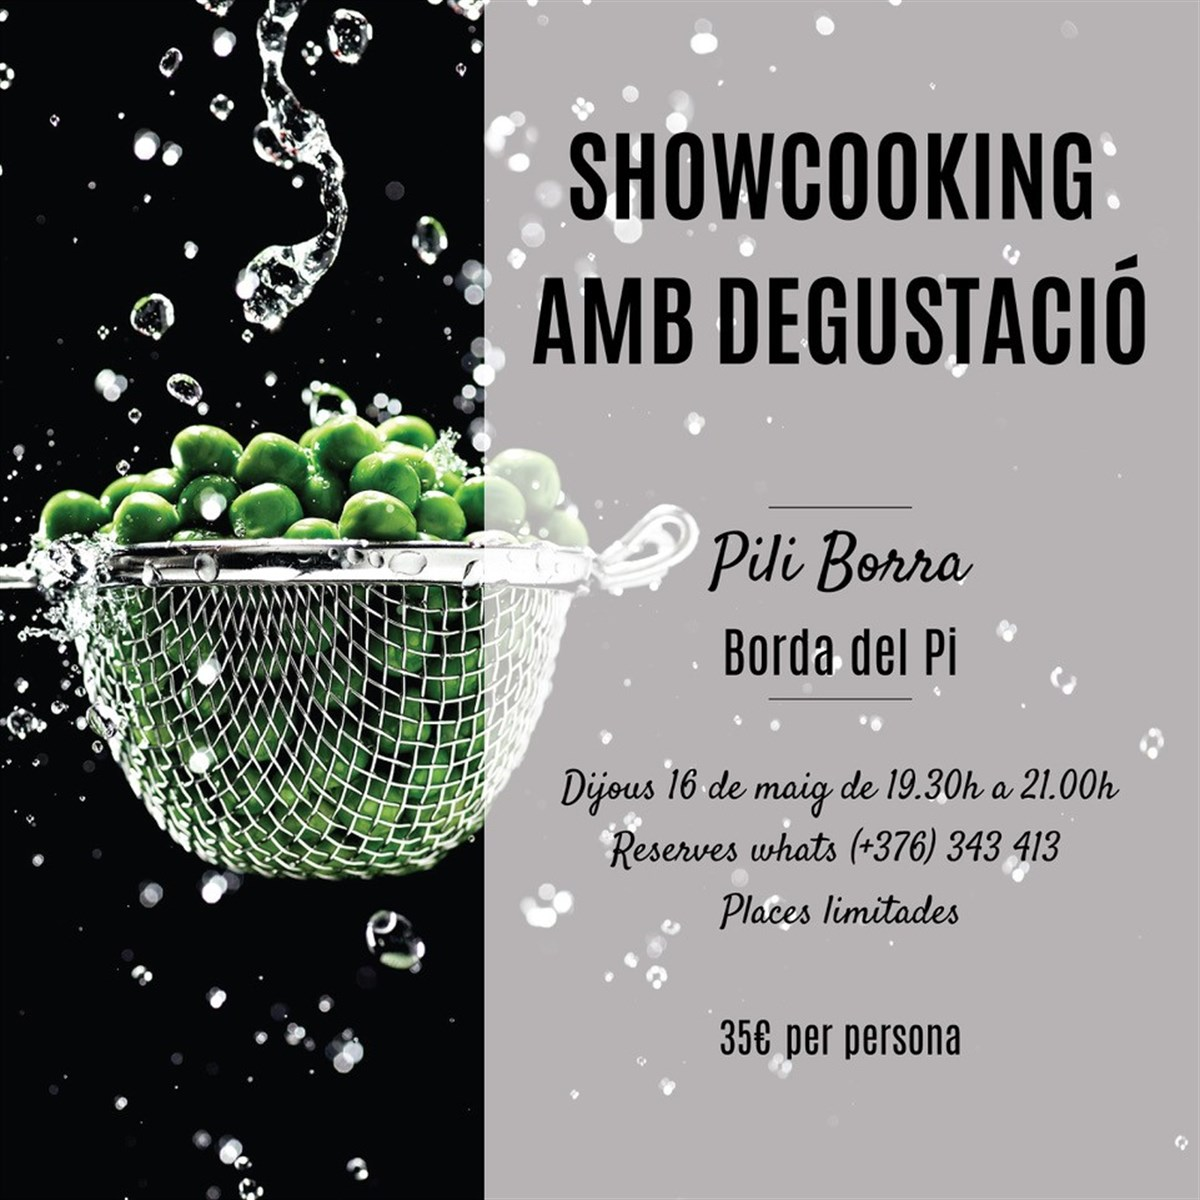 Showcooking with tasting